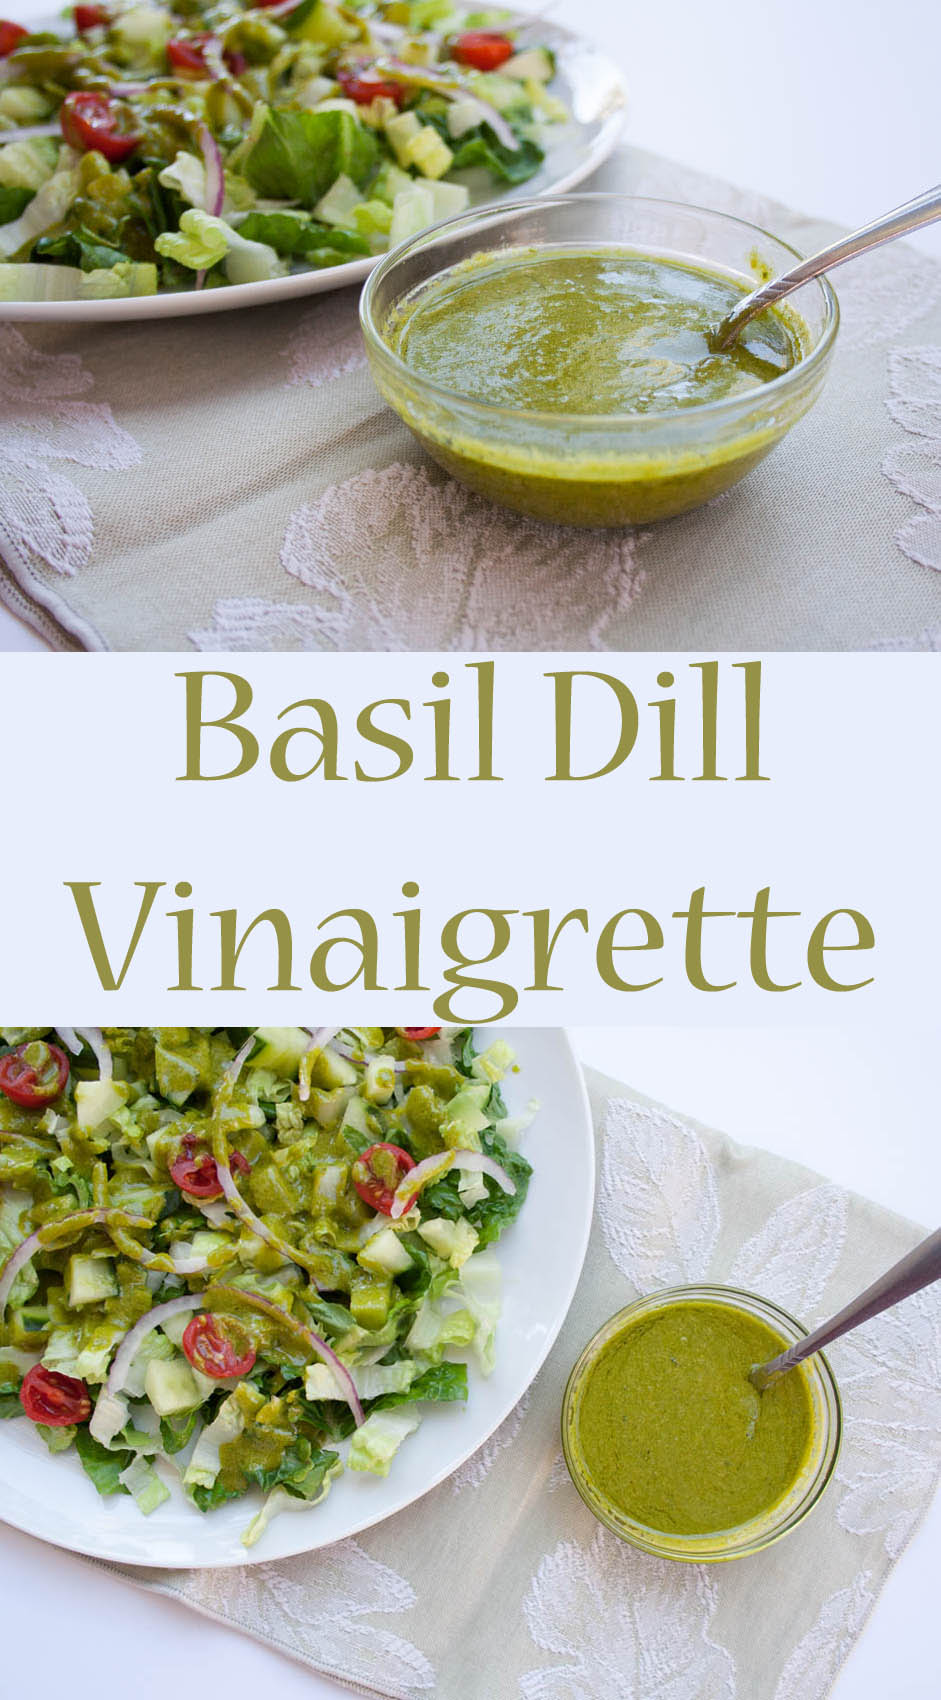 Basil Dill Vinaigrette collage photo with text.